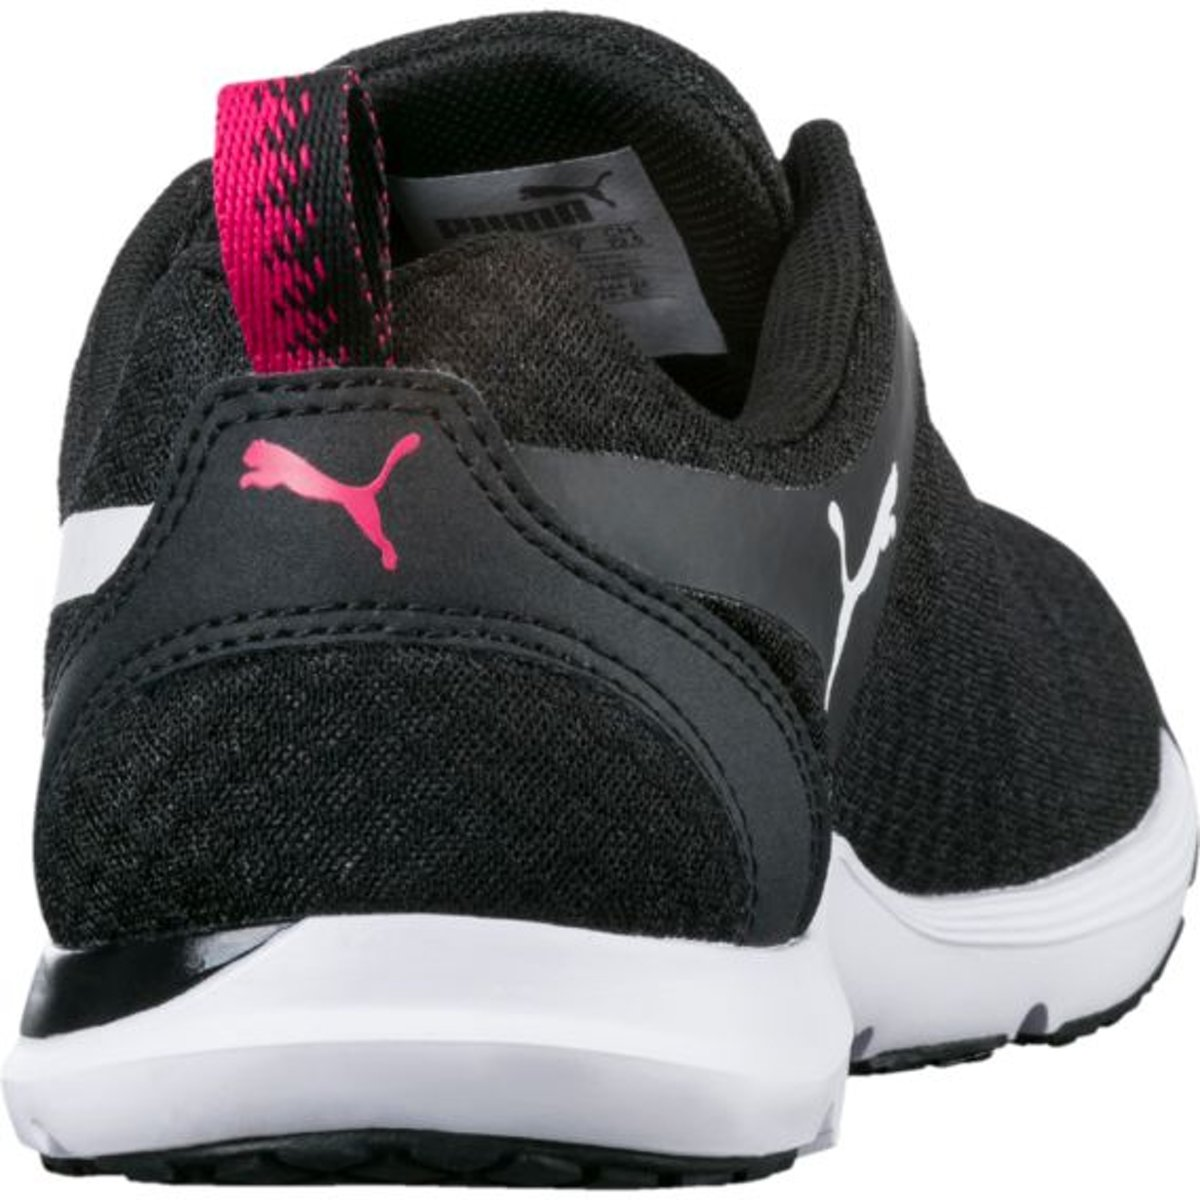 PUMA Flex XT Wn's Sportschoenen Dames Puma Black Puma White Love Potion